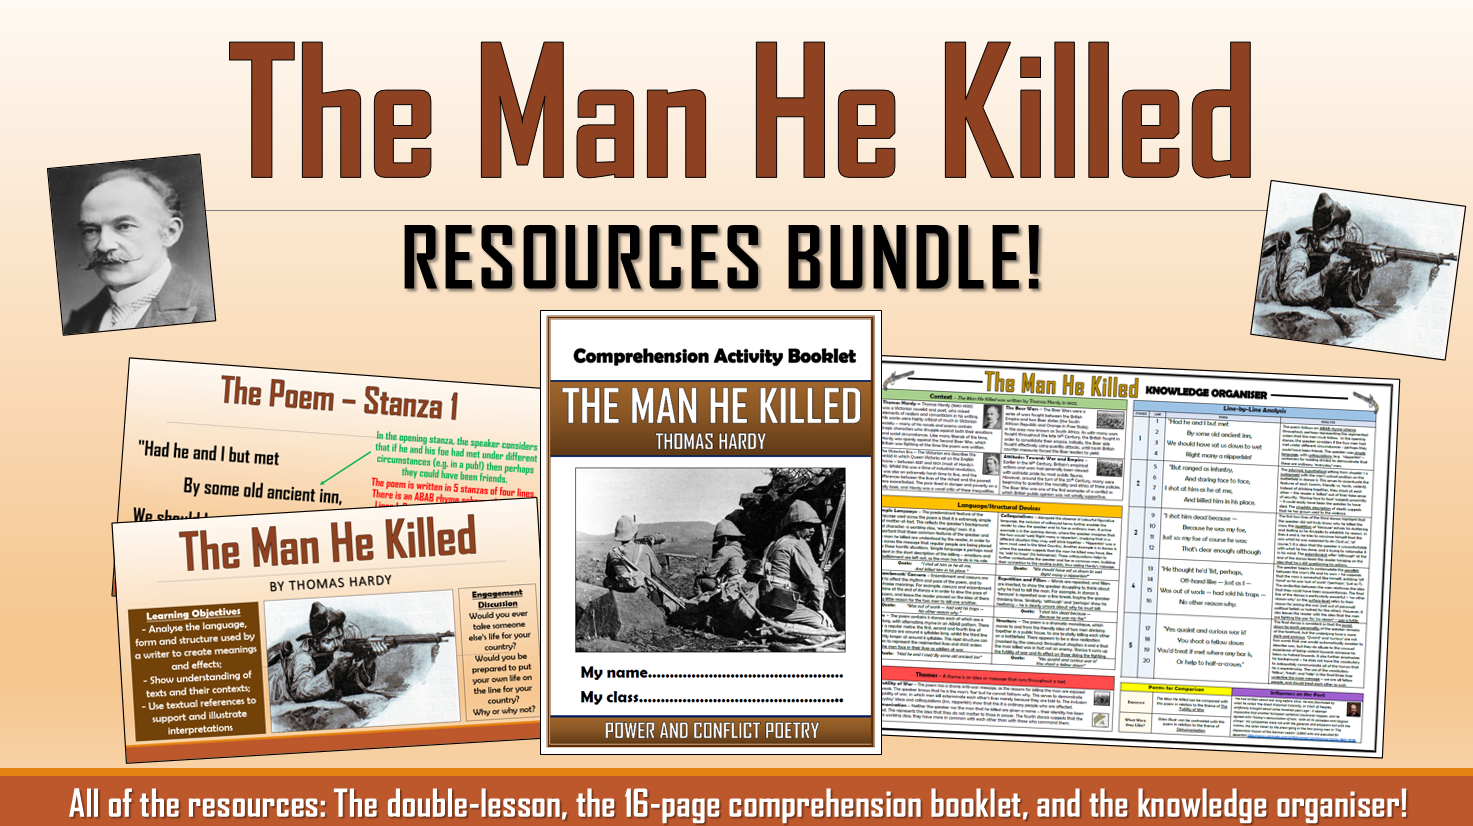 The Man He Killed Resources Bundle!